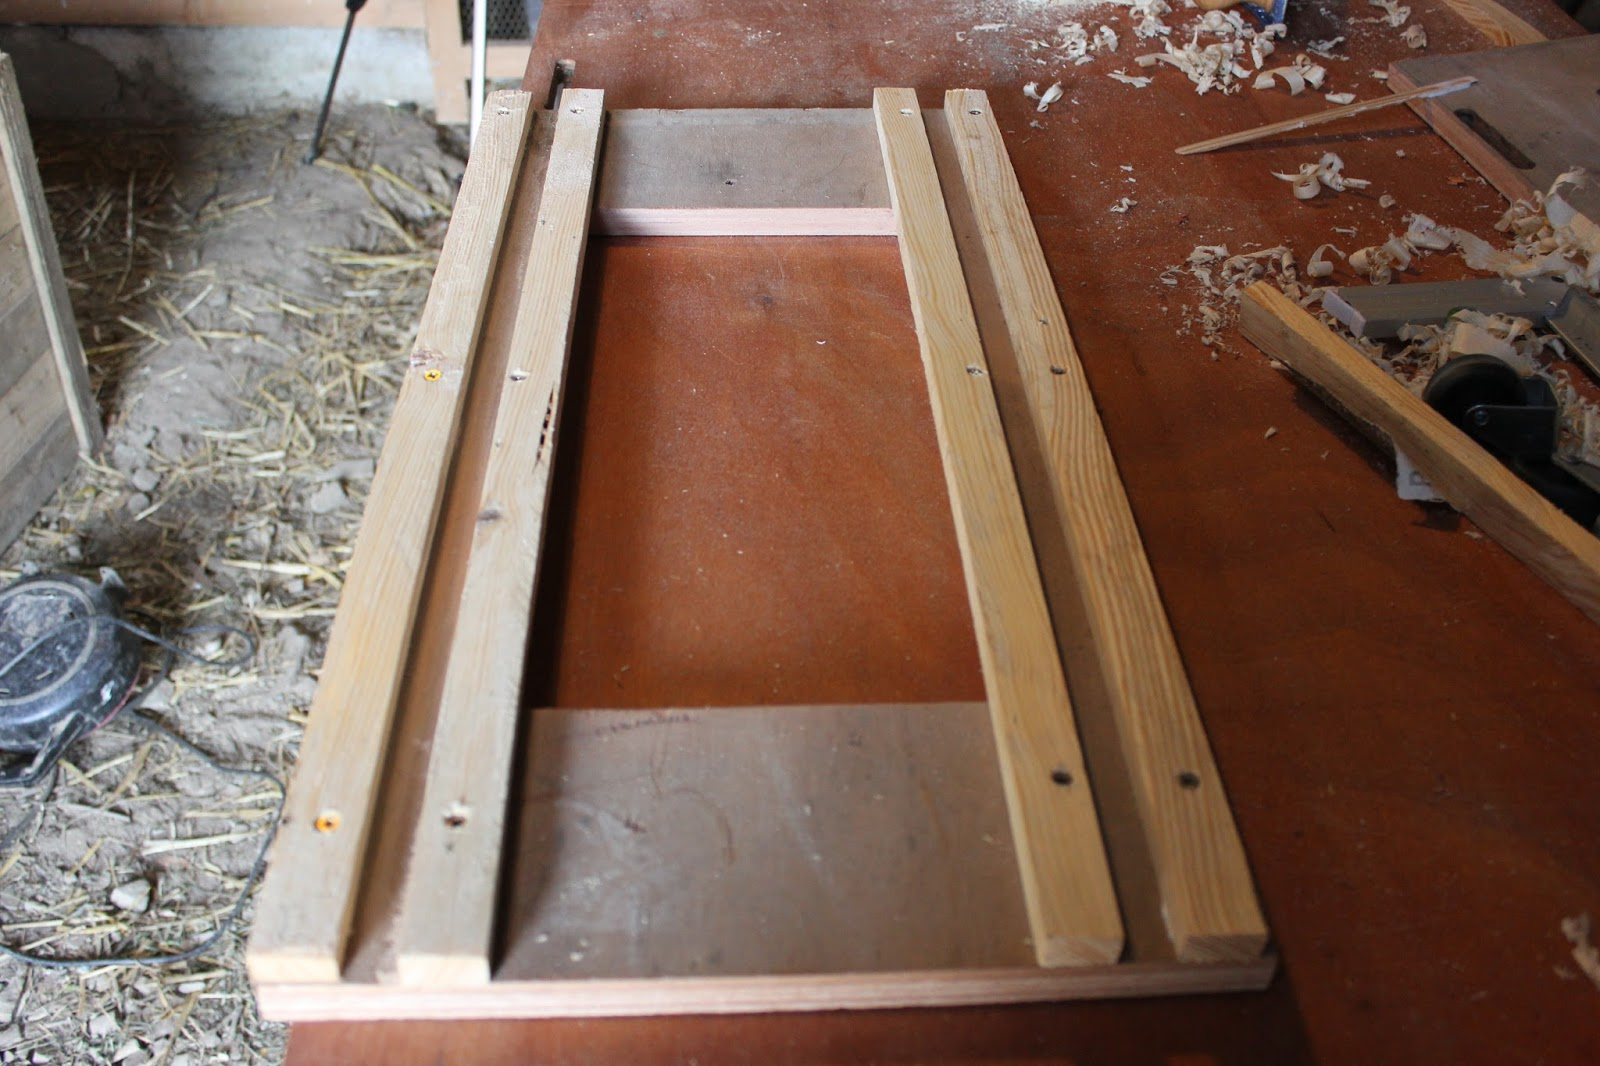 Completed section of crosscut saw table